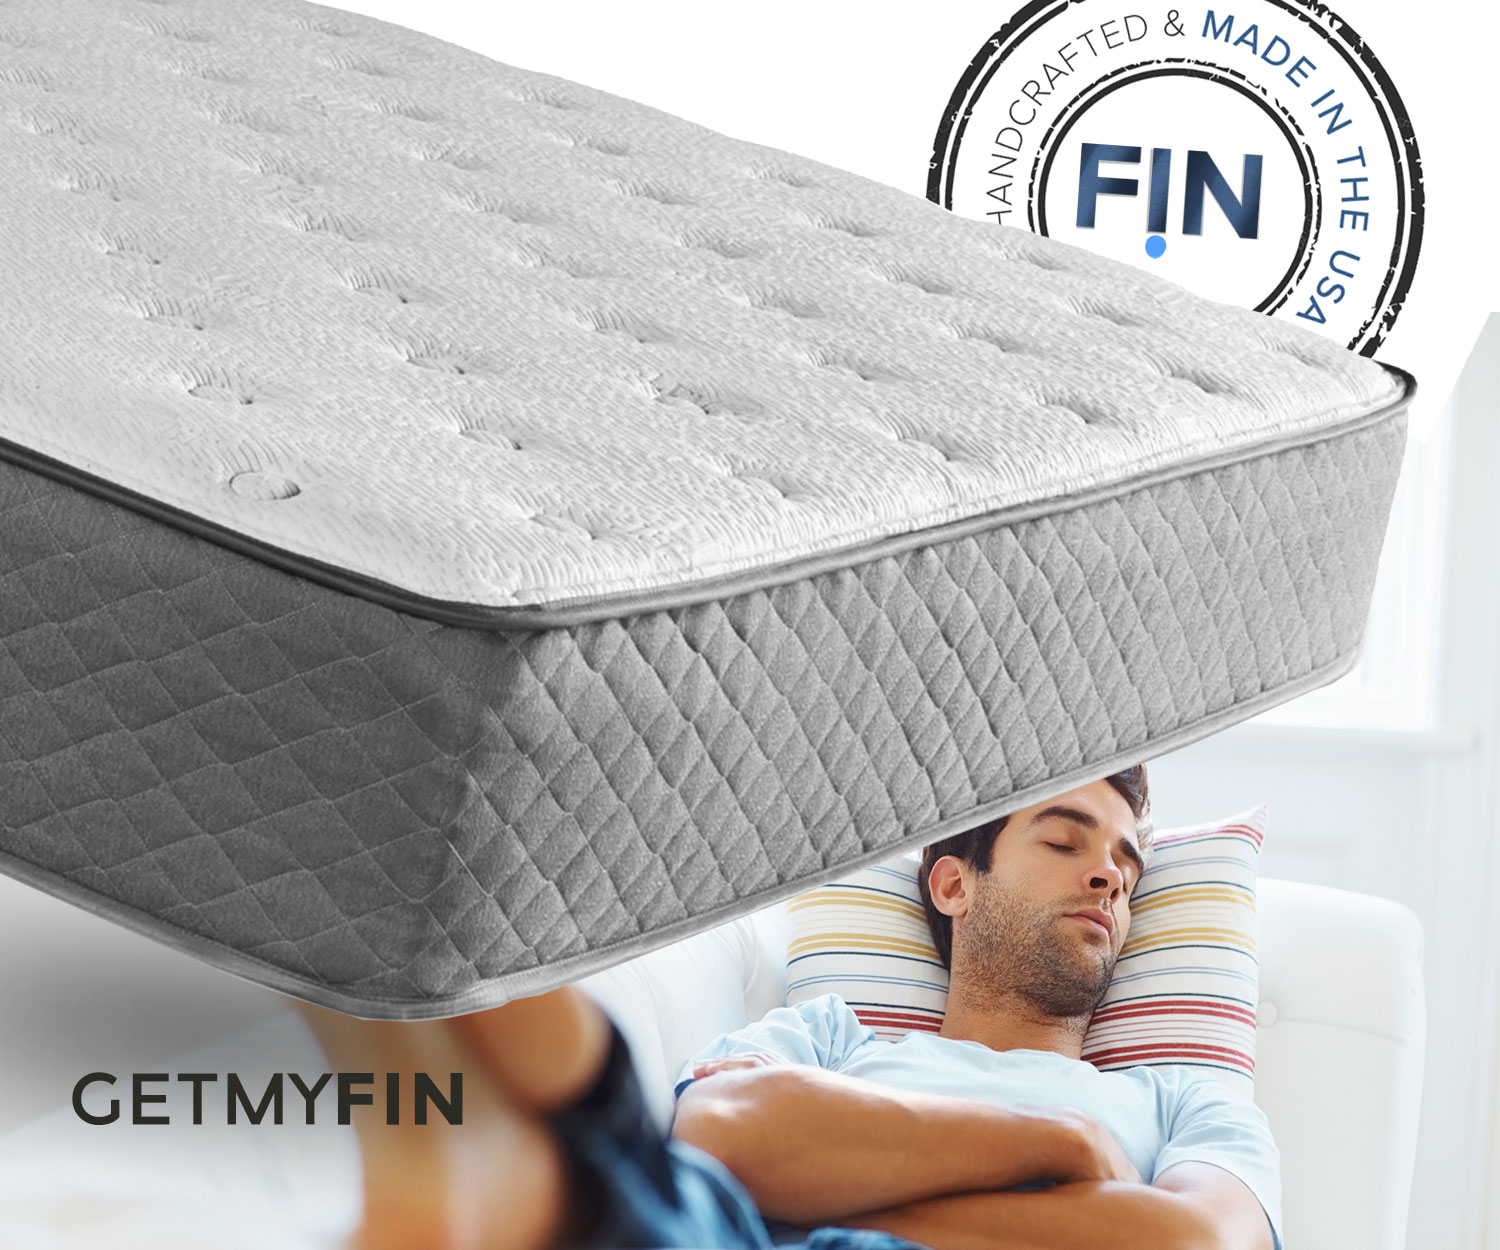 "Each fin mattress is custom made to order and shipped within days free by UPS in a box 47 x 15 inches. Upon opening fin always transforms to it's ORIGINAL full shape and height. unlike A LOT of other mattresses a fin mattress is made only with ""the good stuff inside"""